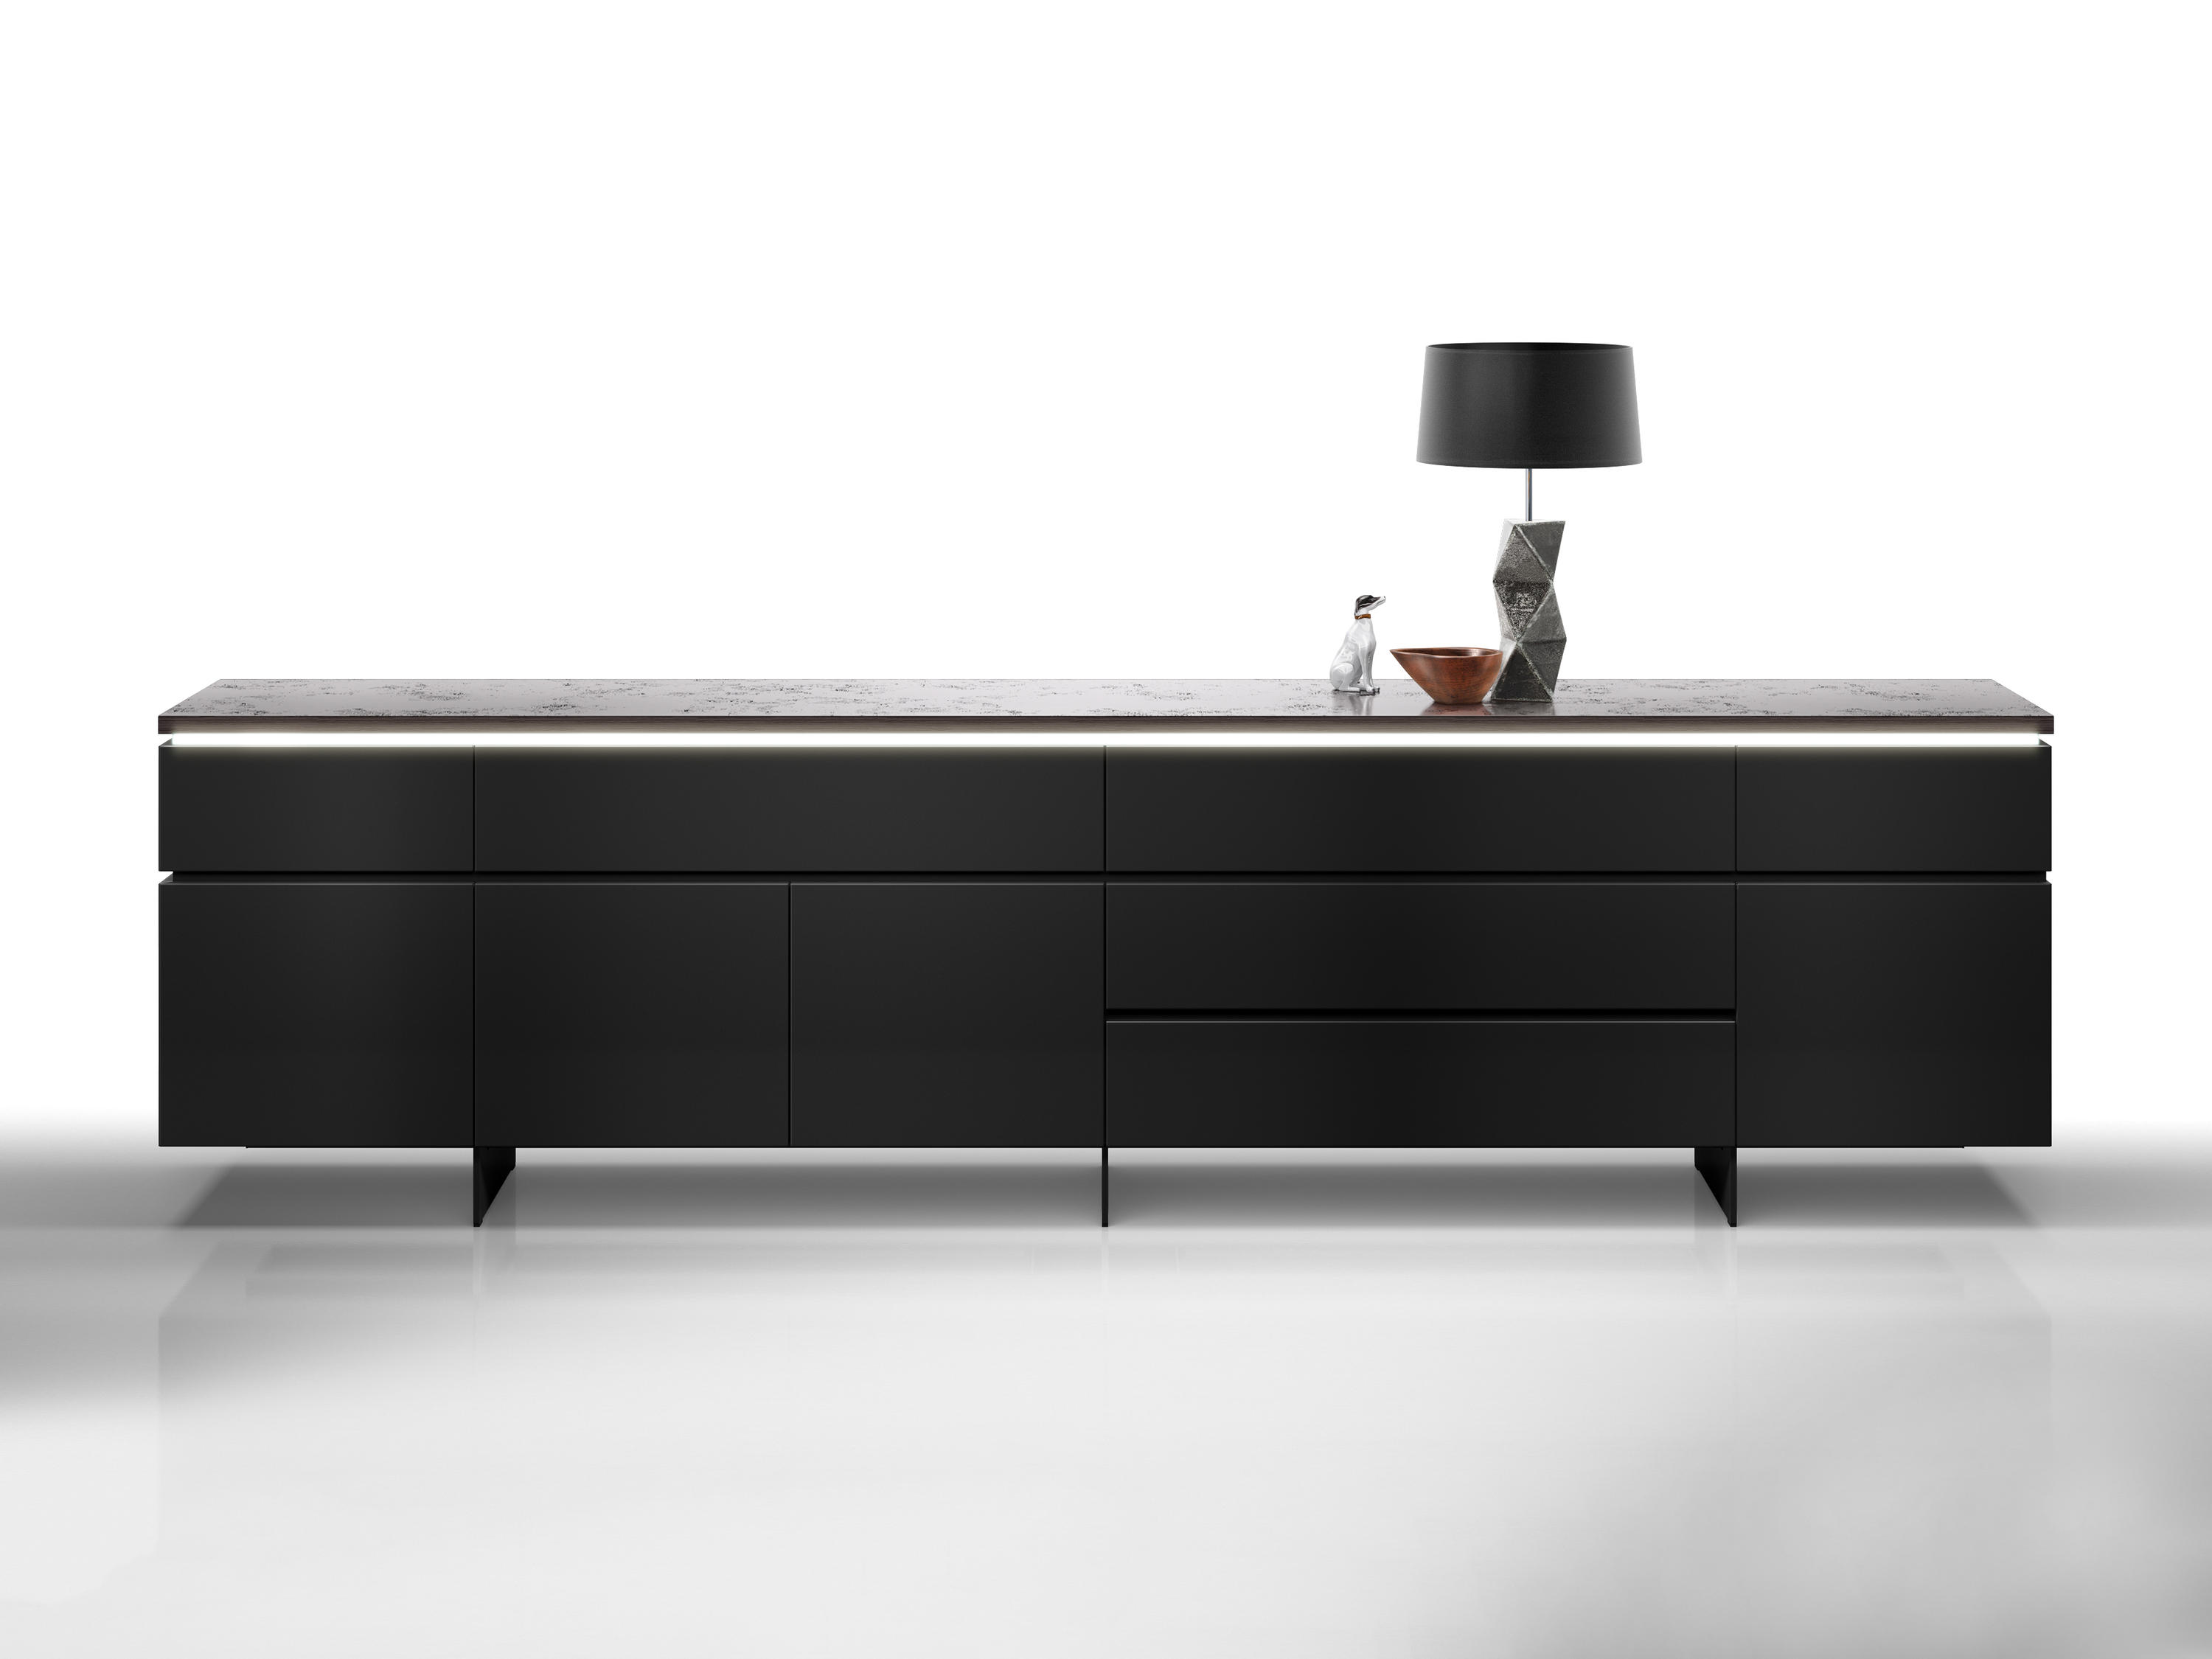 cube gap sideboards kommoden von interl bke architonic. Black Bedroom Furniture Sets. Home Design Ideas